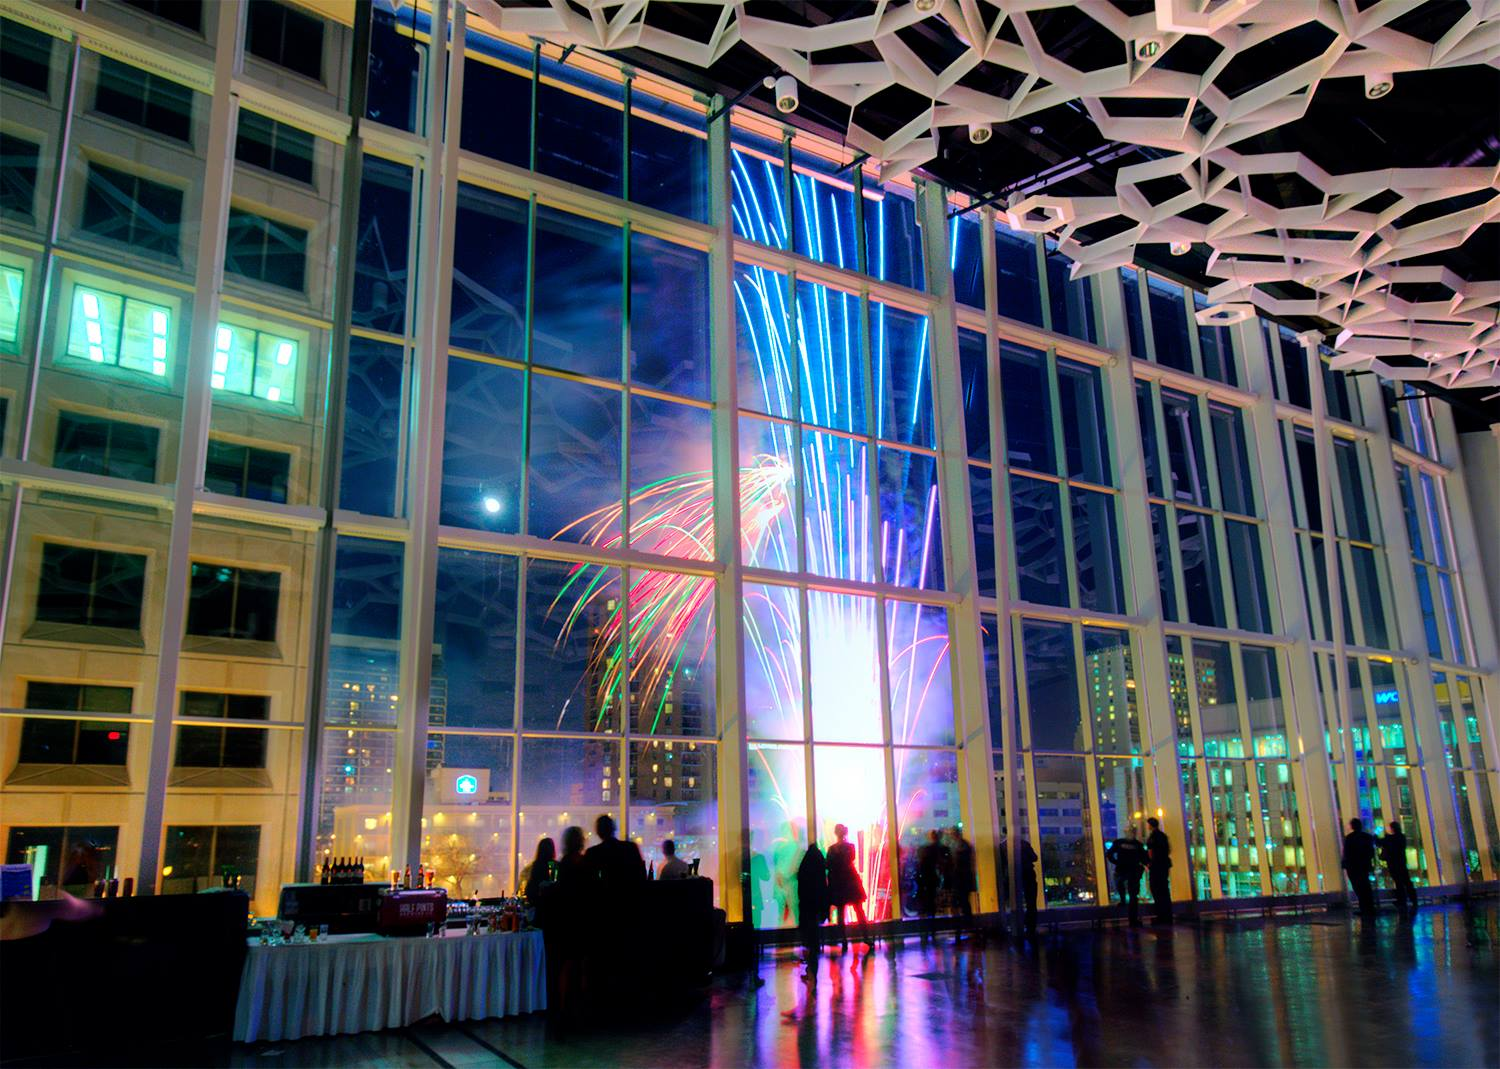 Winter's Eve – A New Year's Celebration at the RBC Convention Centre.